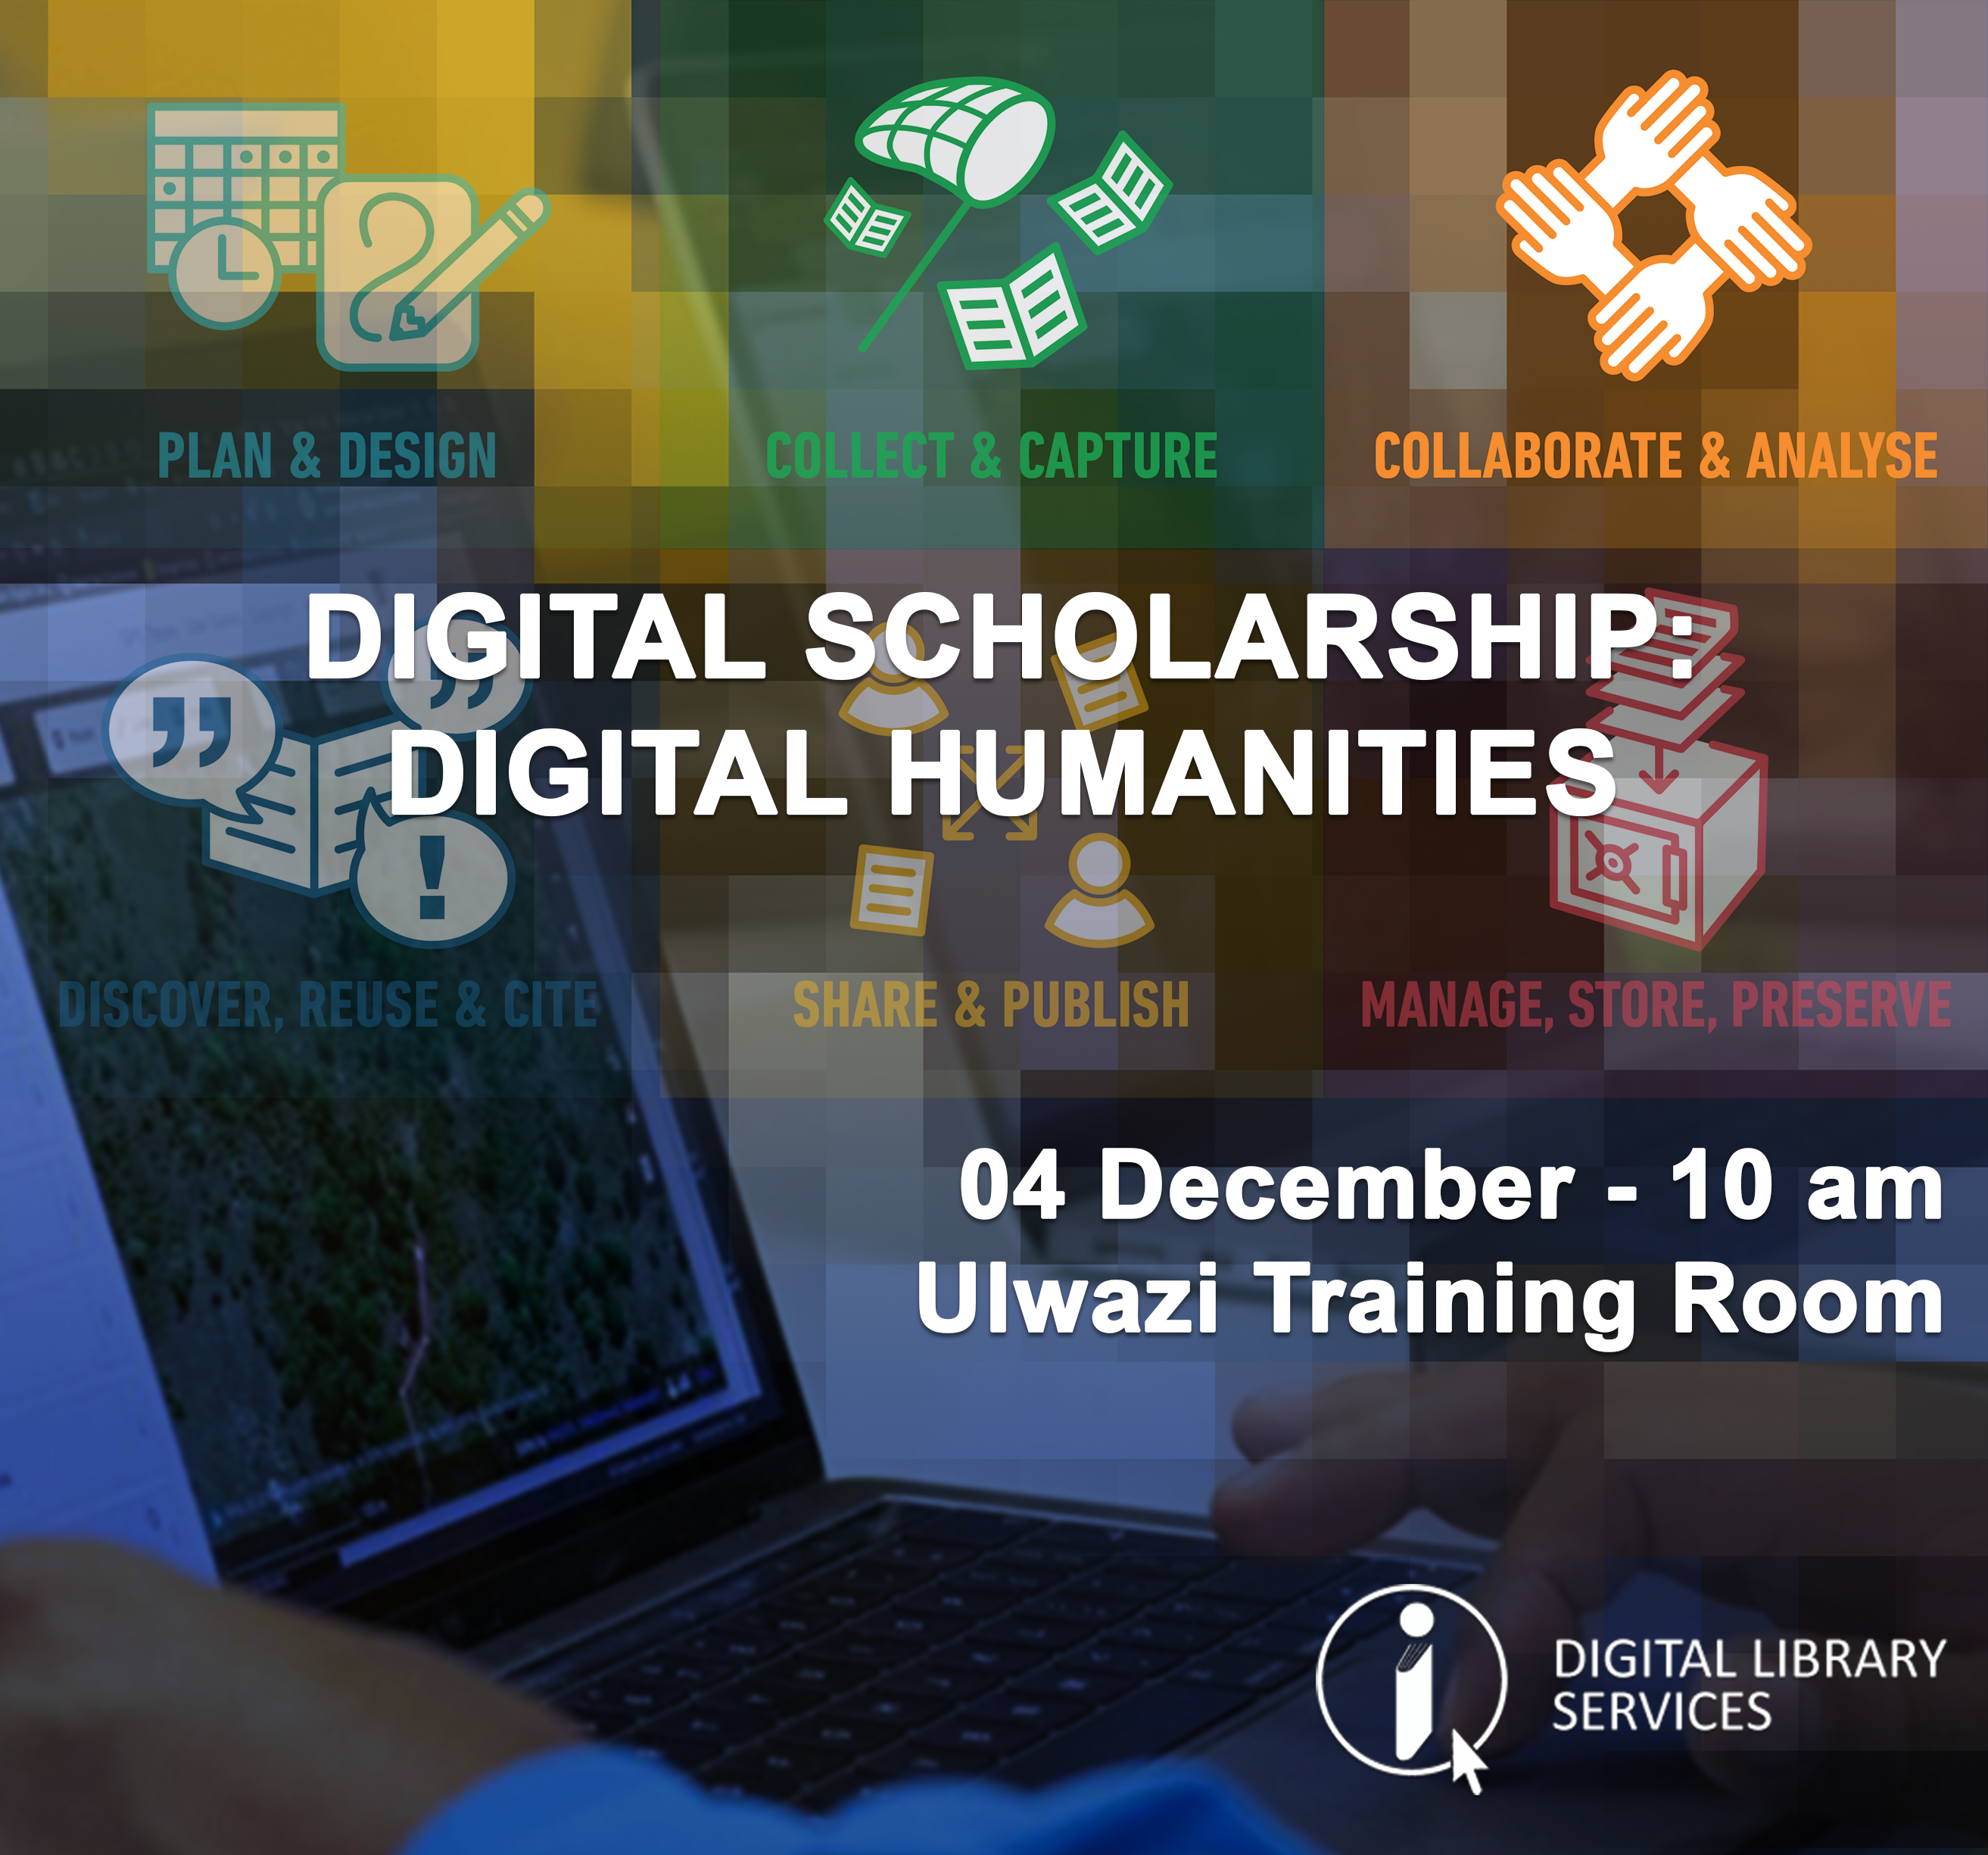 Digital Scholarship: Digital Humanities